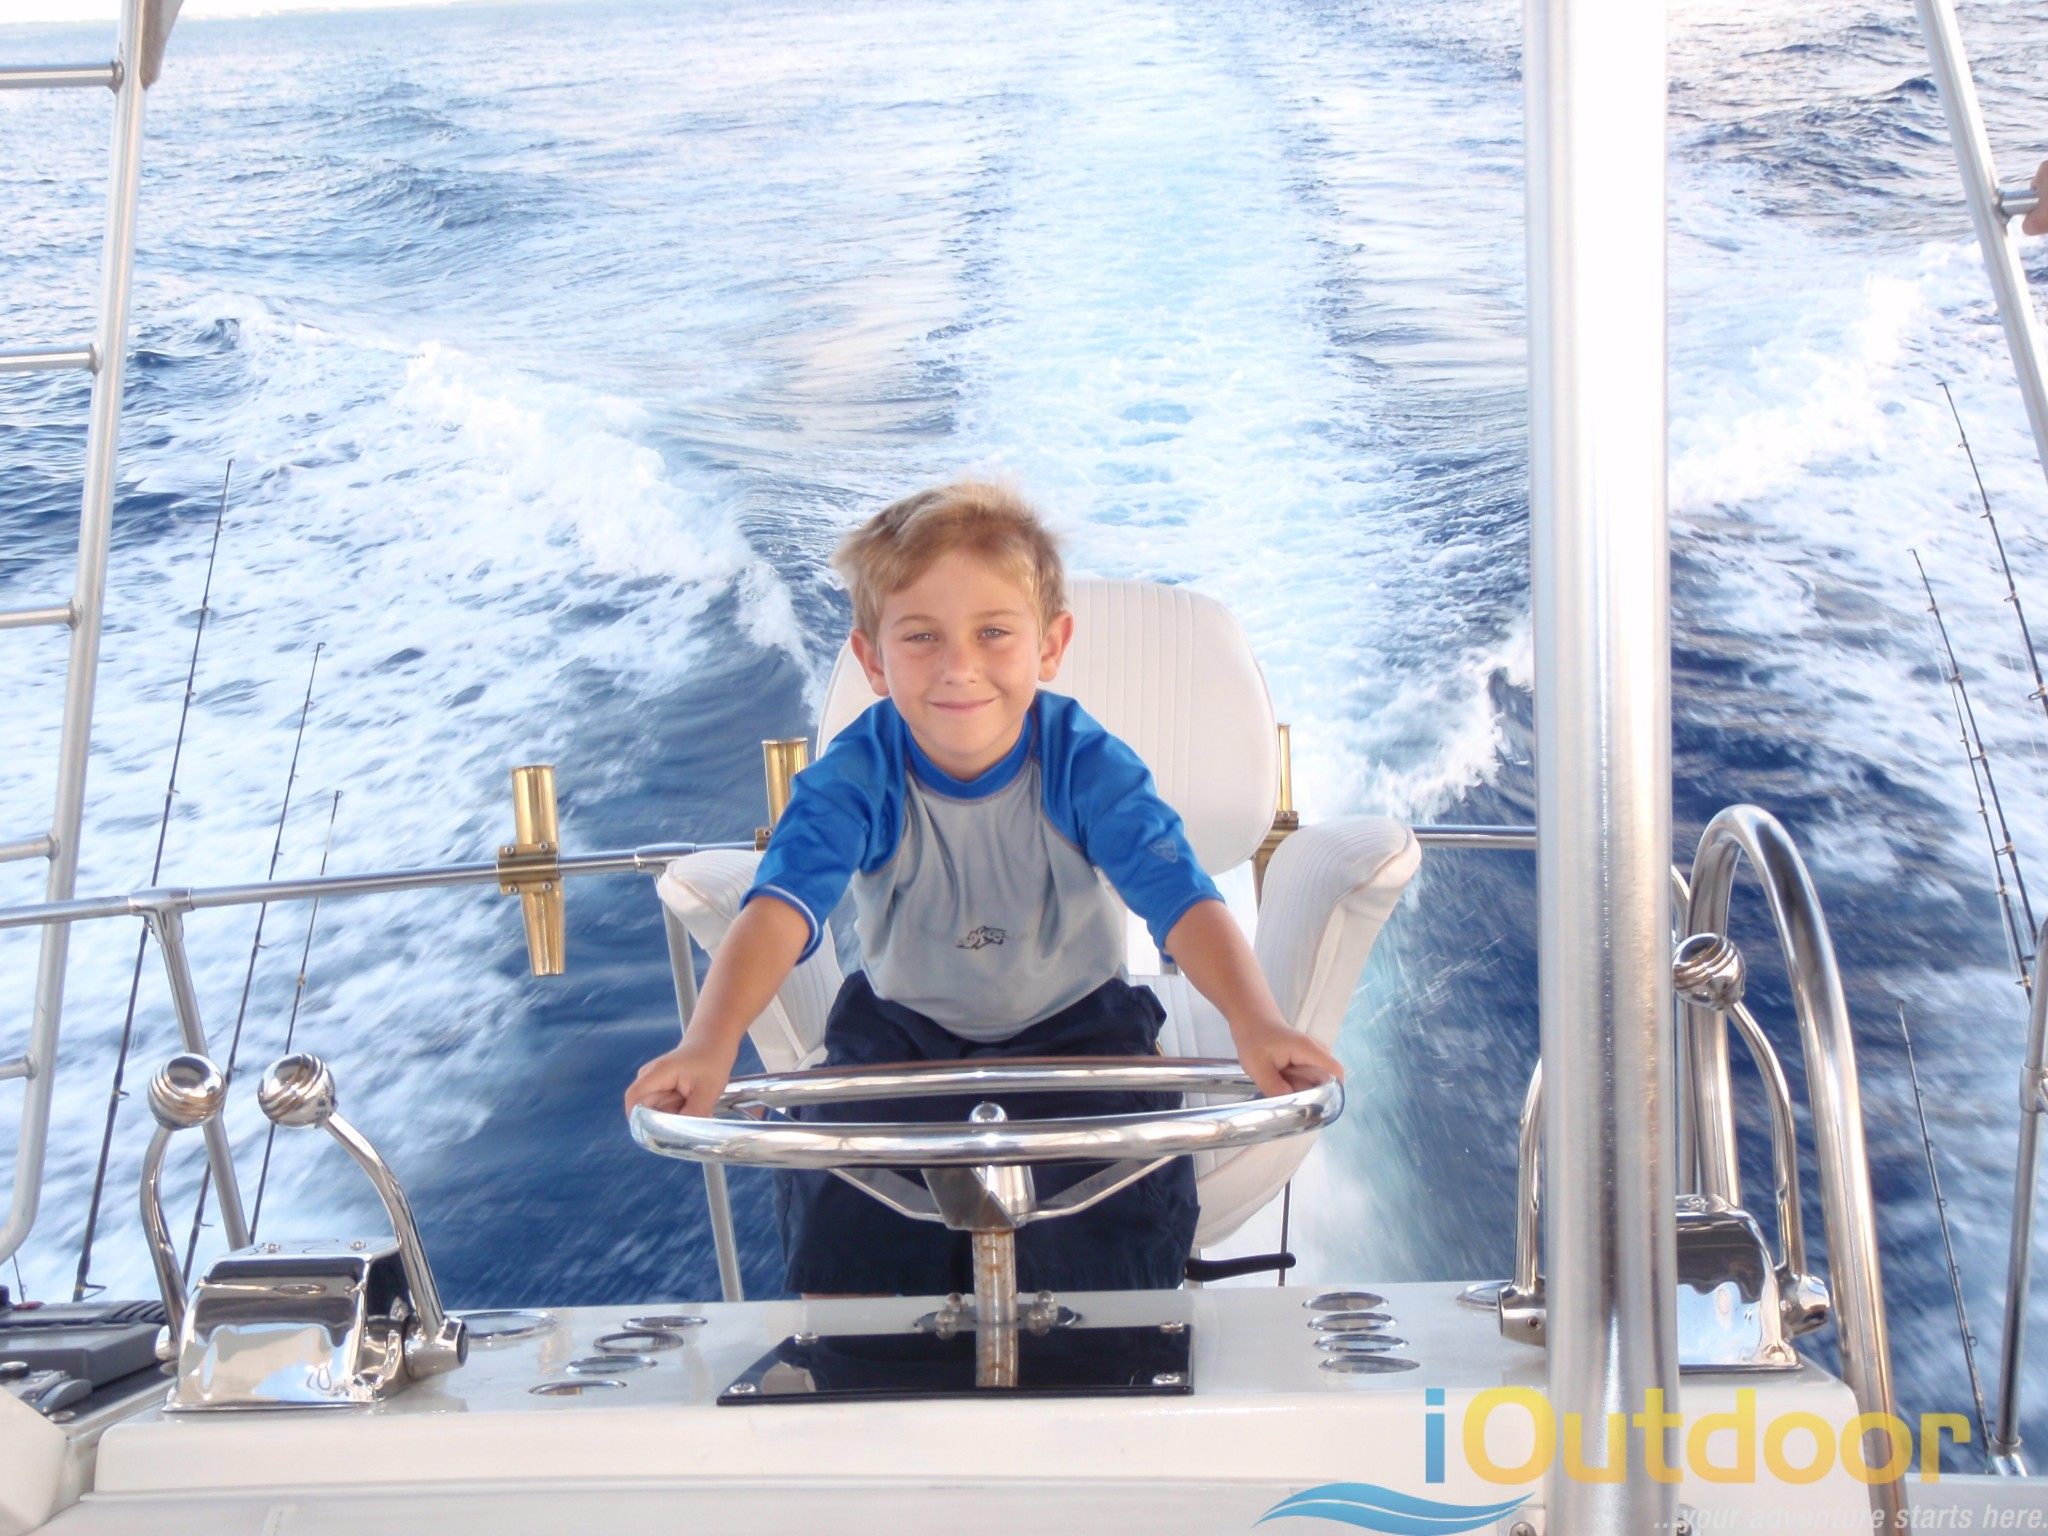 Offshore Fishing Cape Canaveral Florida